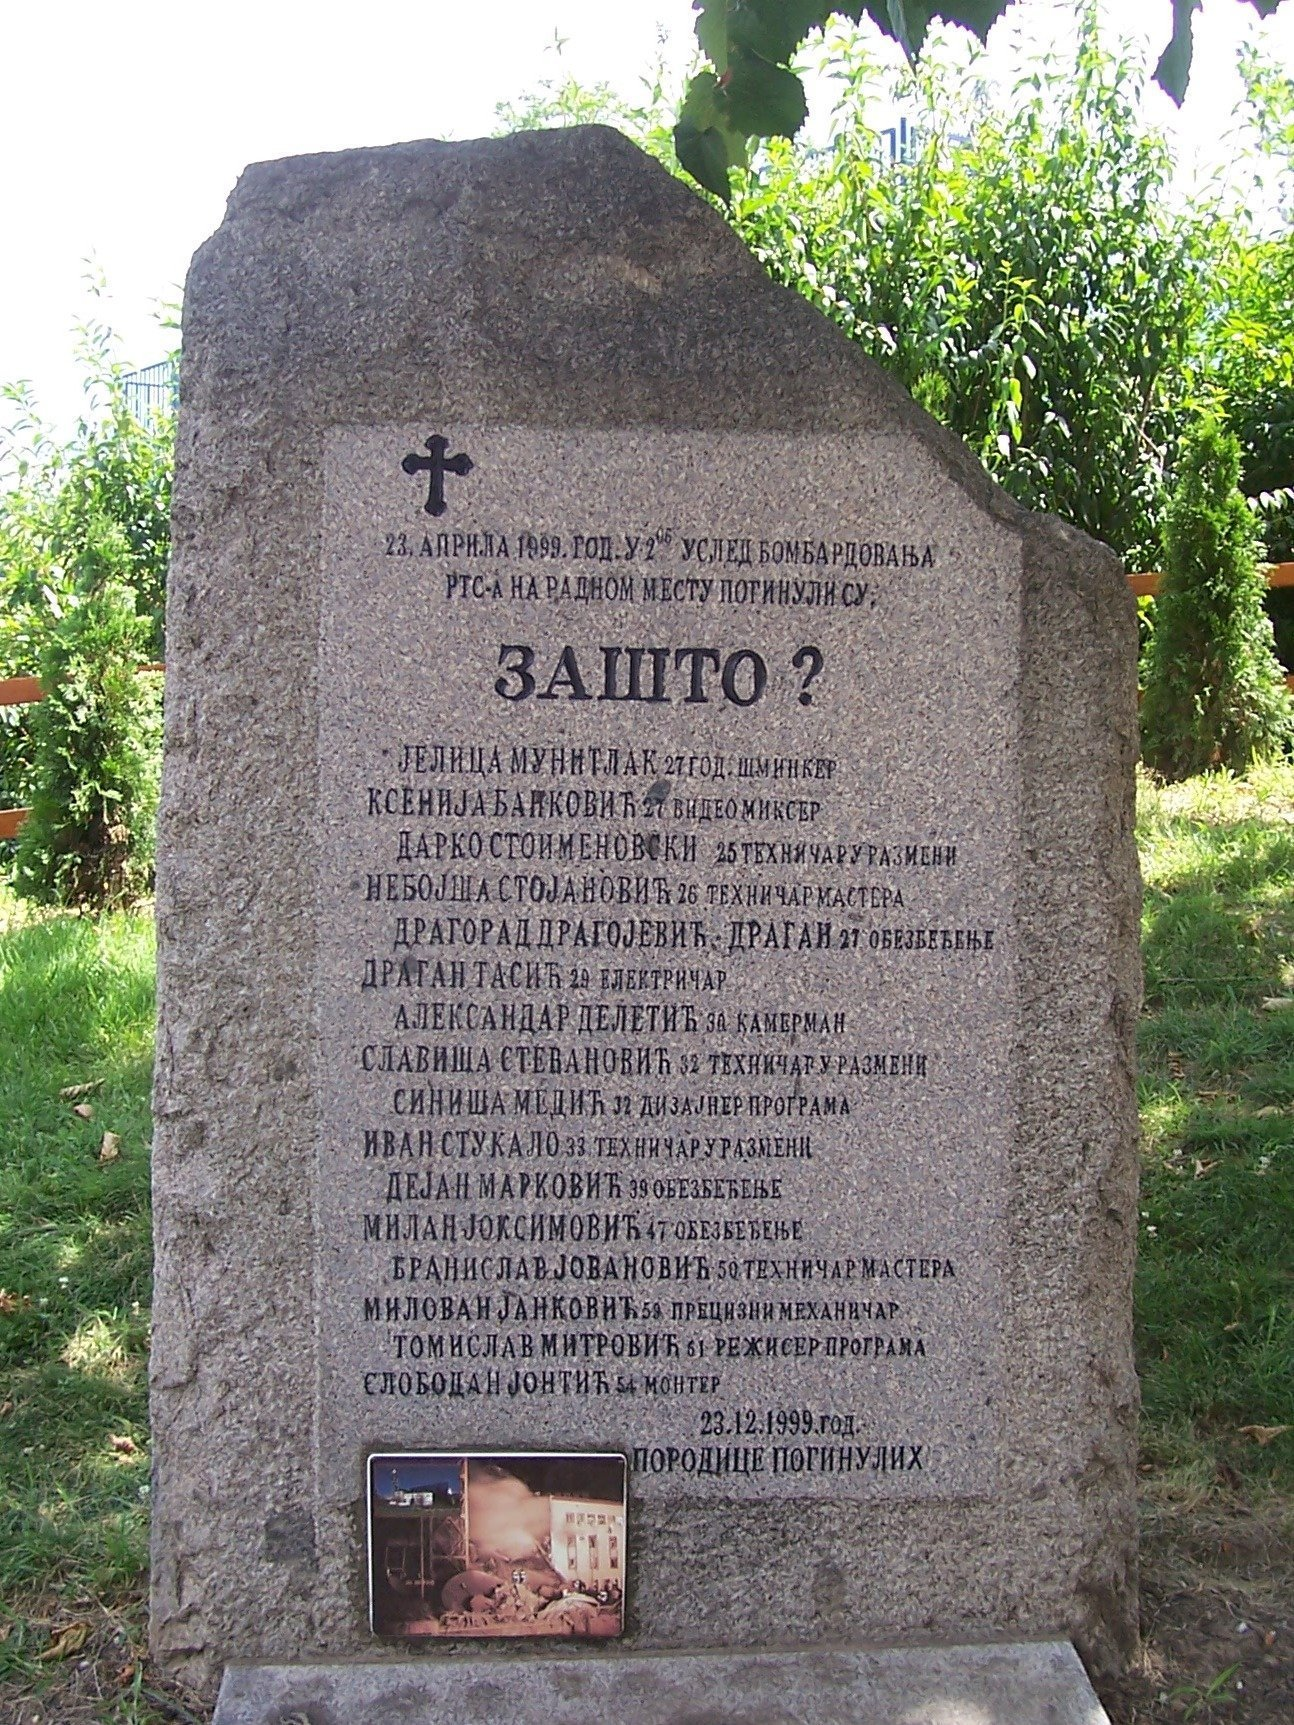 Memorial to the victims of the bombing of the headquarters of Radio Television of Serbia (RTS), where 16 mostly-young people died, asking the simple question: Zashto (Why)?